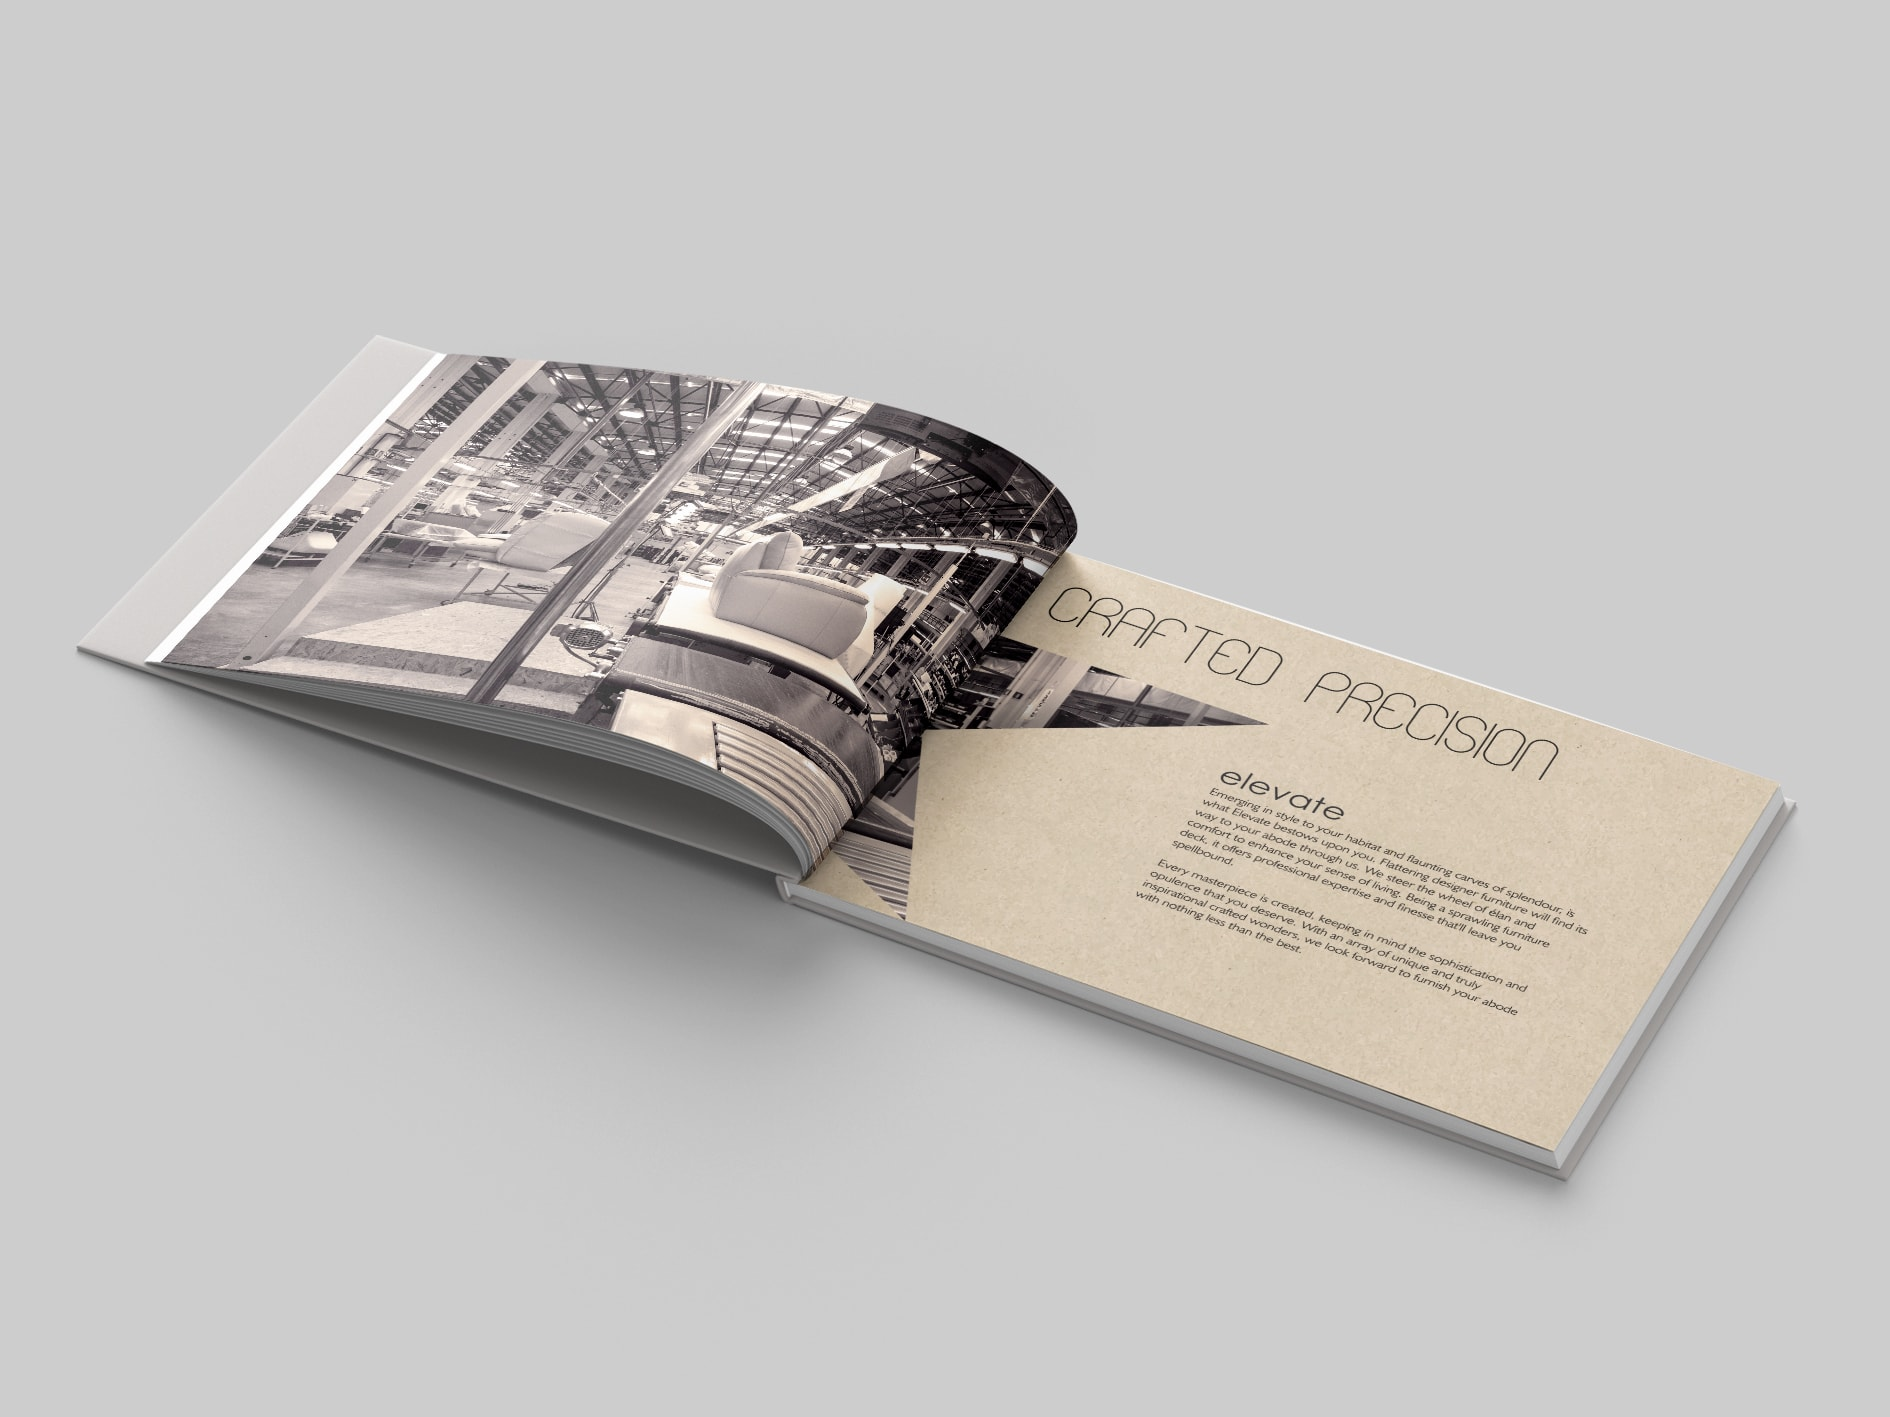 f7psic16tb2-elevate-brochure,-best-furniture-brochure-design,-what's-in-a-name-creatives-(2)